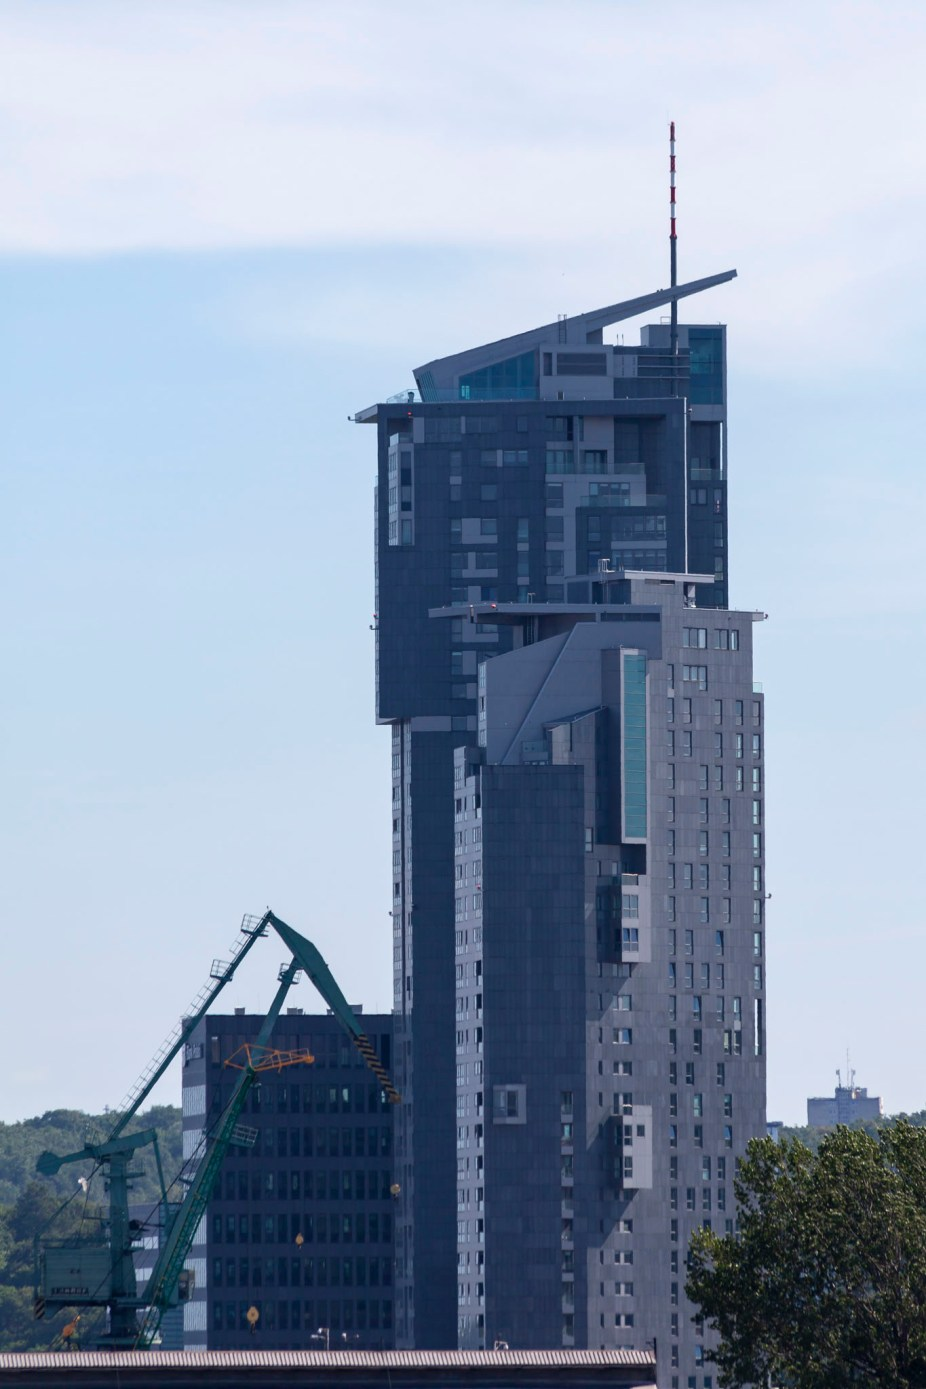 Gdynia Sea Towers